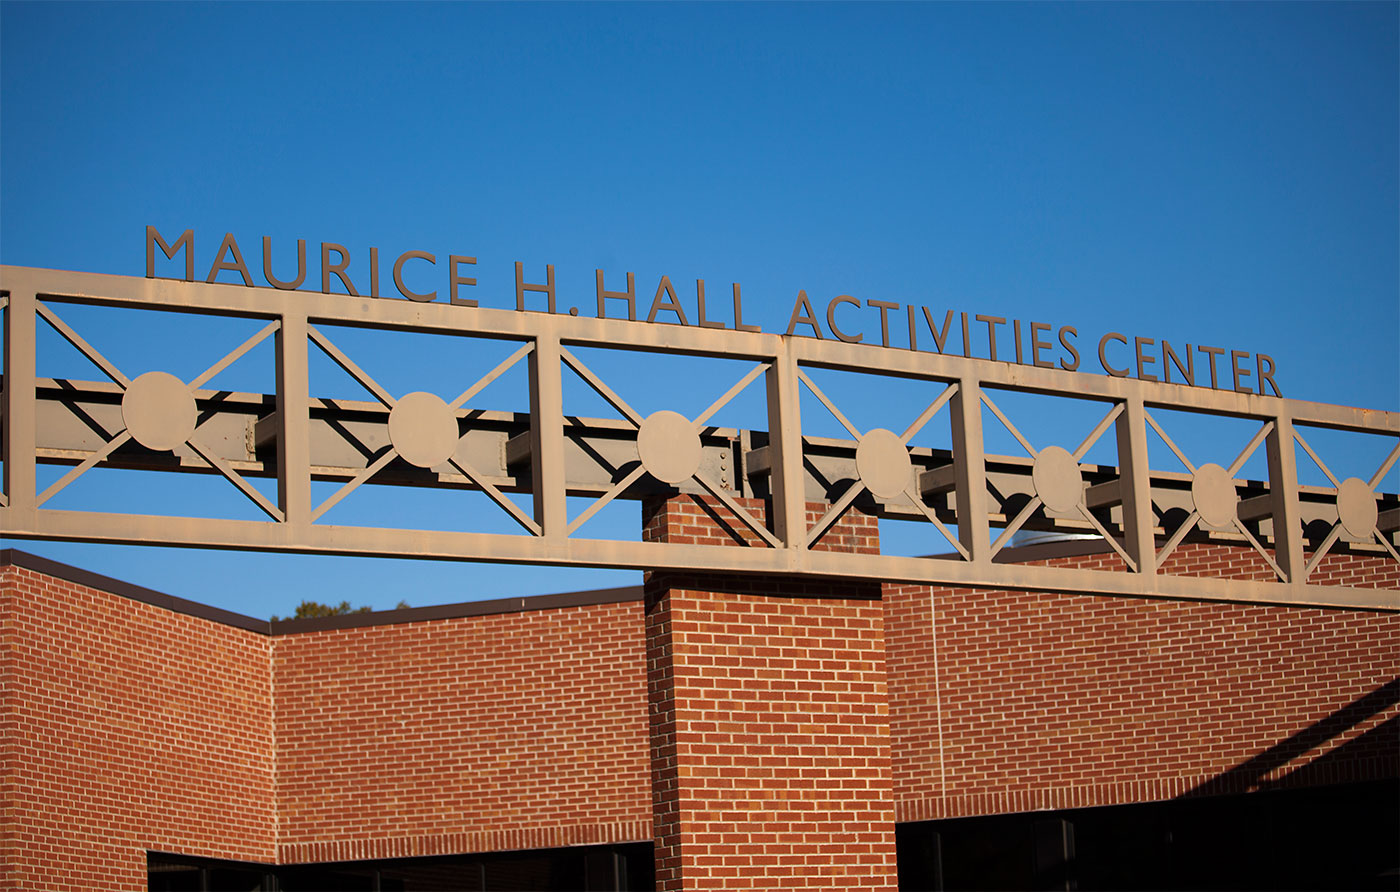 Maurice H. Hall Activities Center